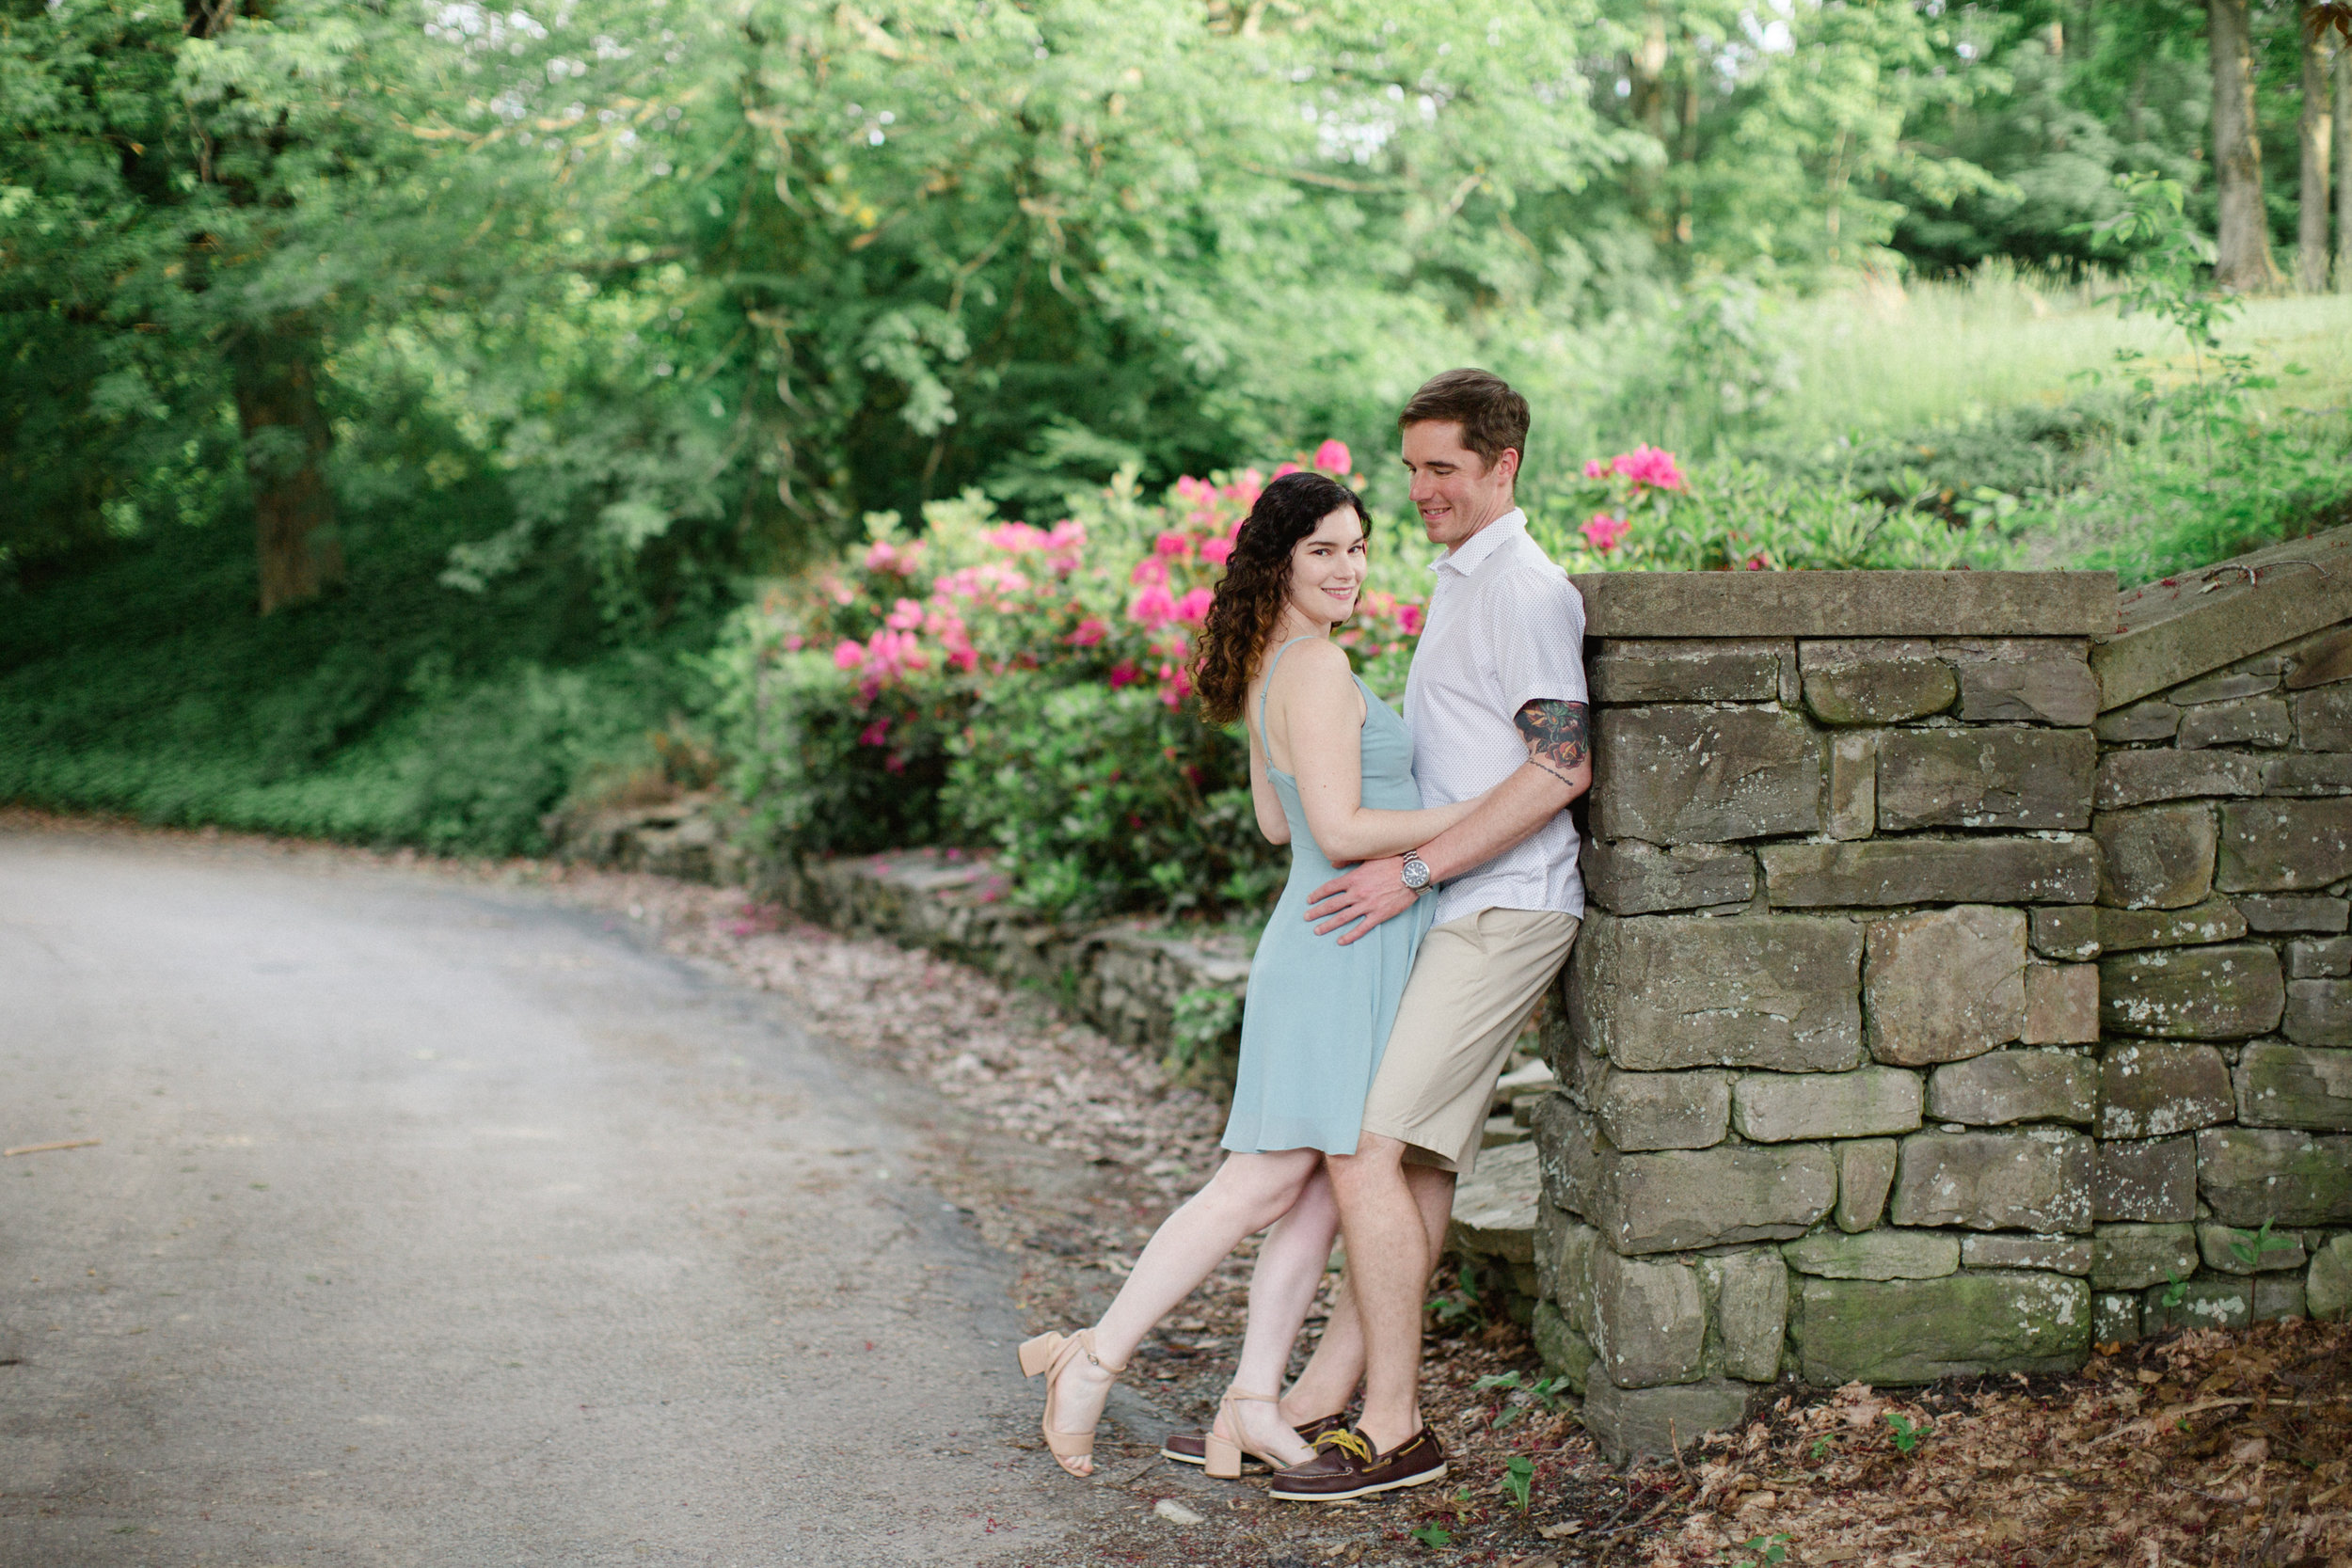 Moscow PA Engagement Session Photos_JDP-29.jpg